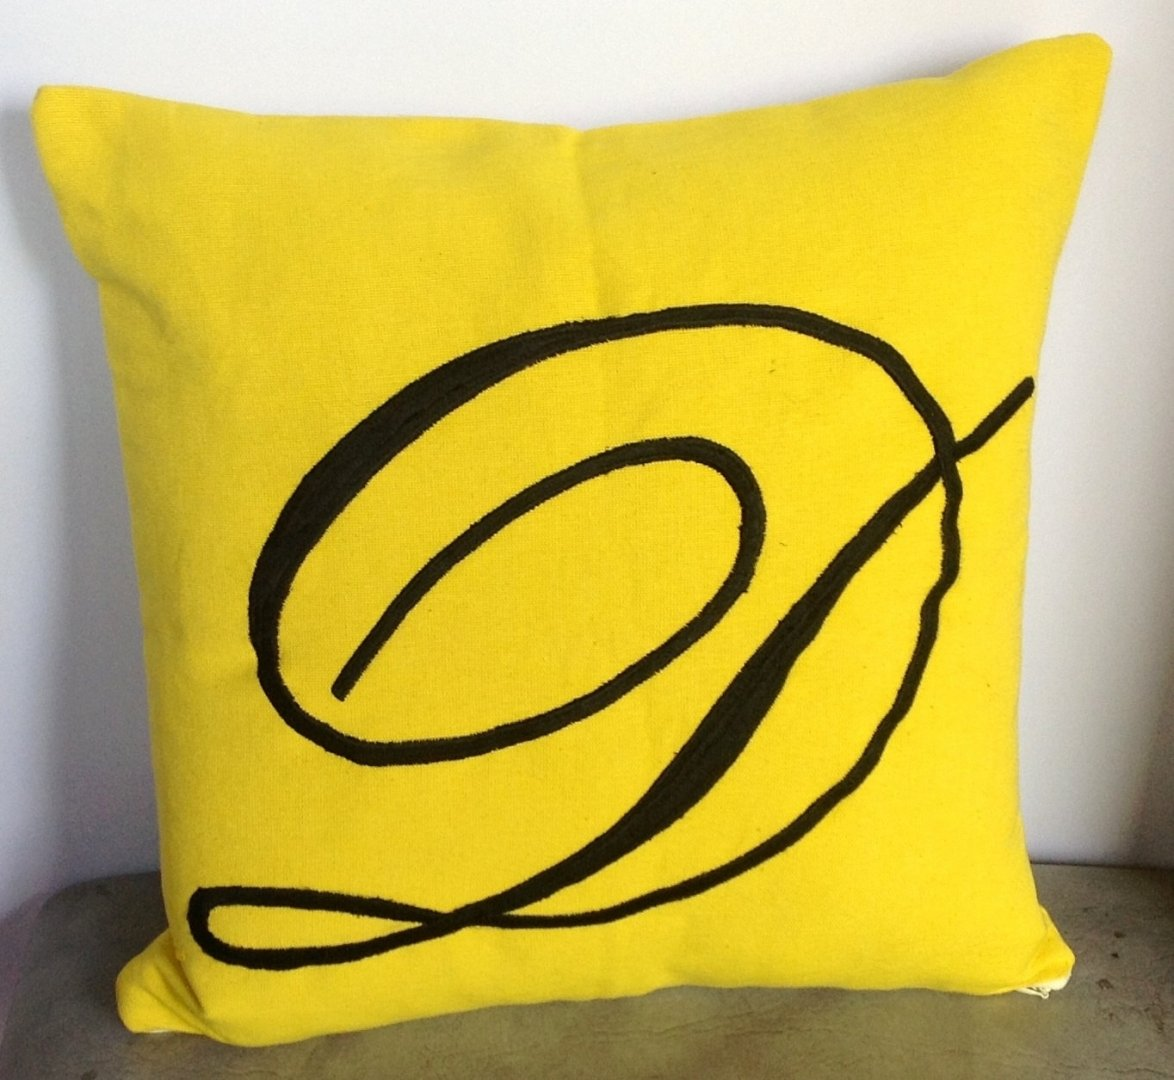 26 Inch Pillow Covers Home Furniture Design